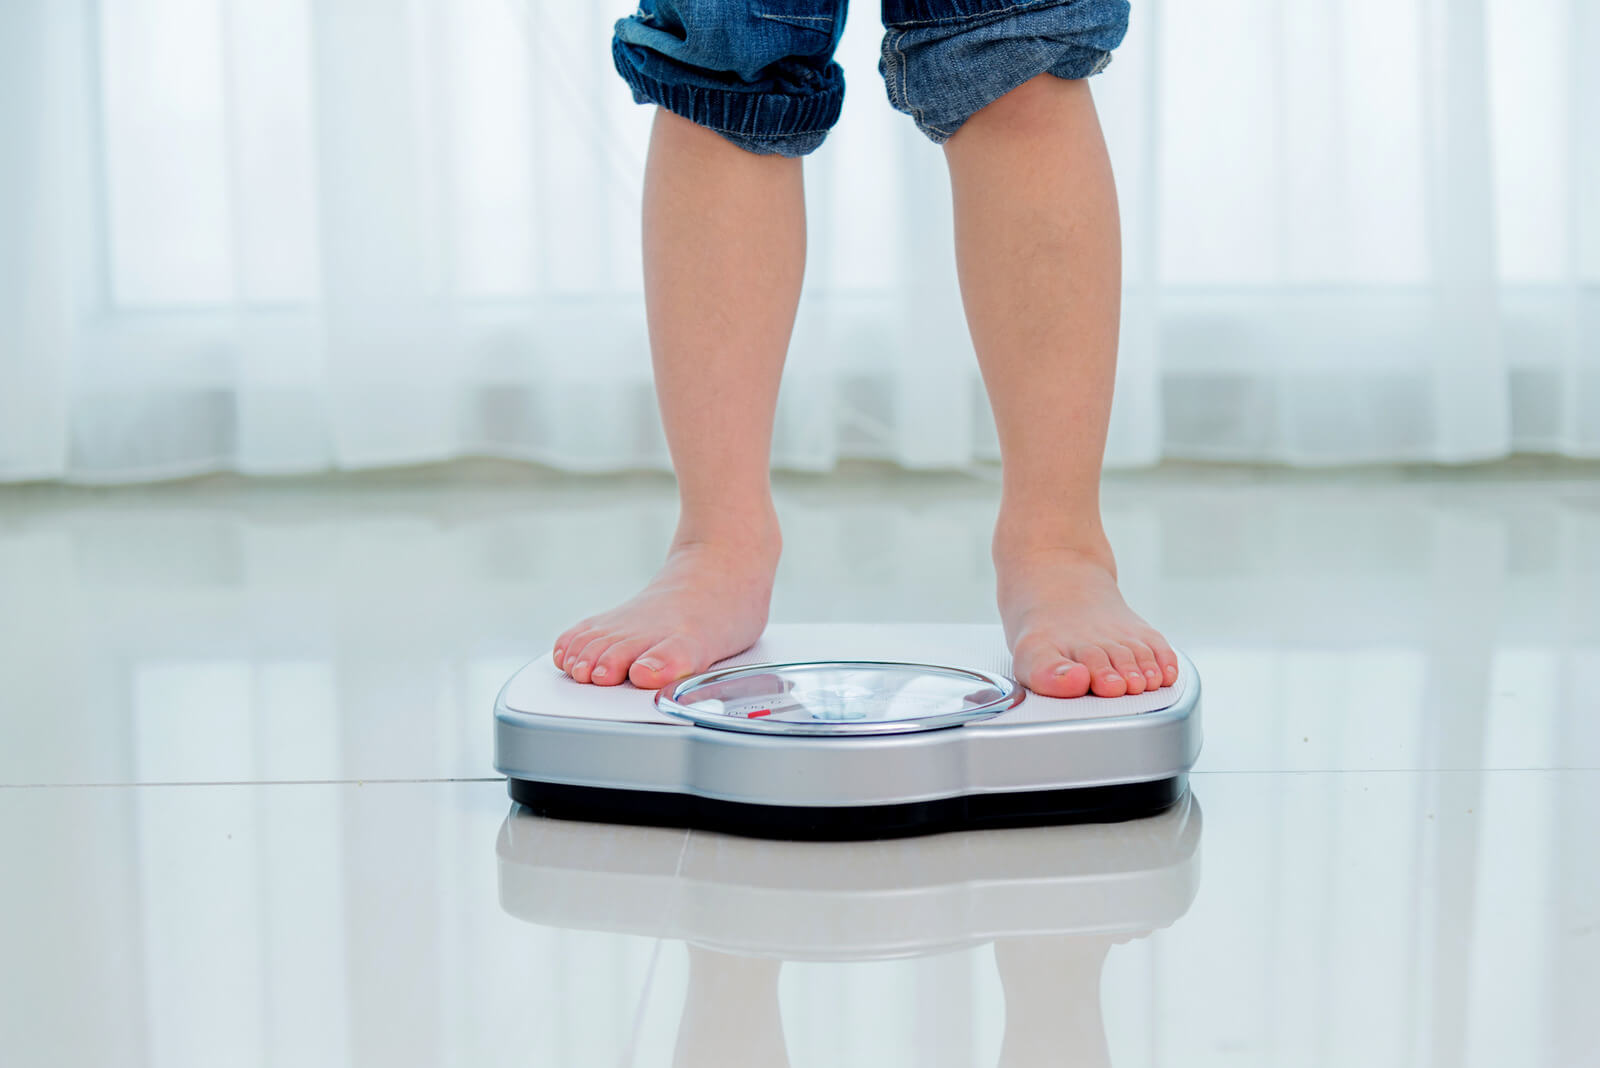 malnourished child on pediatric weight scale